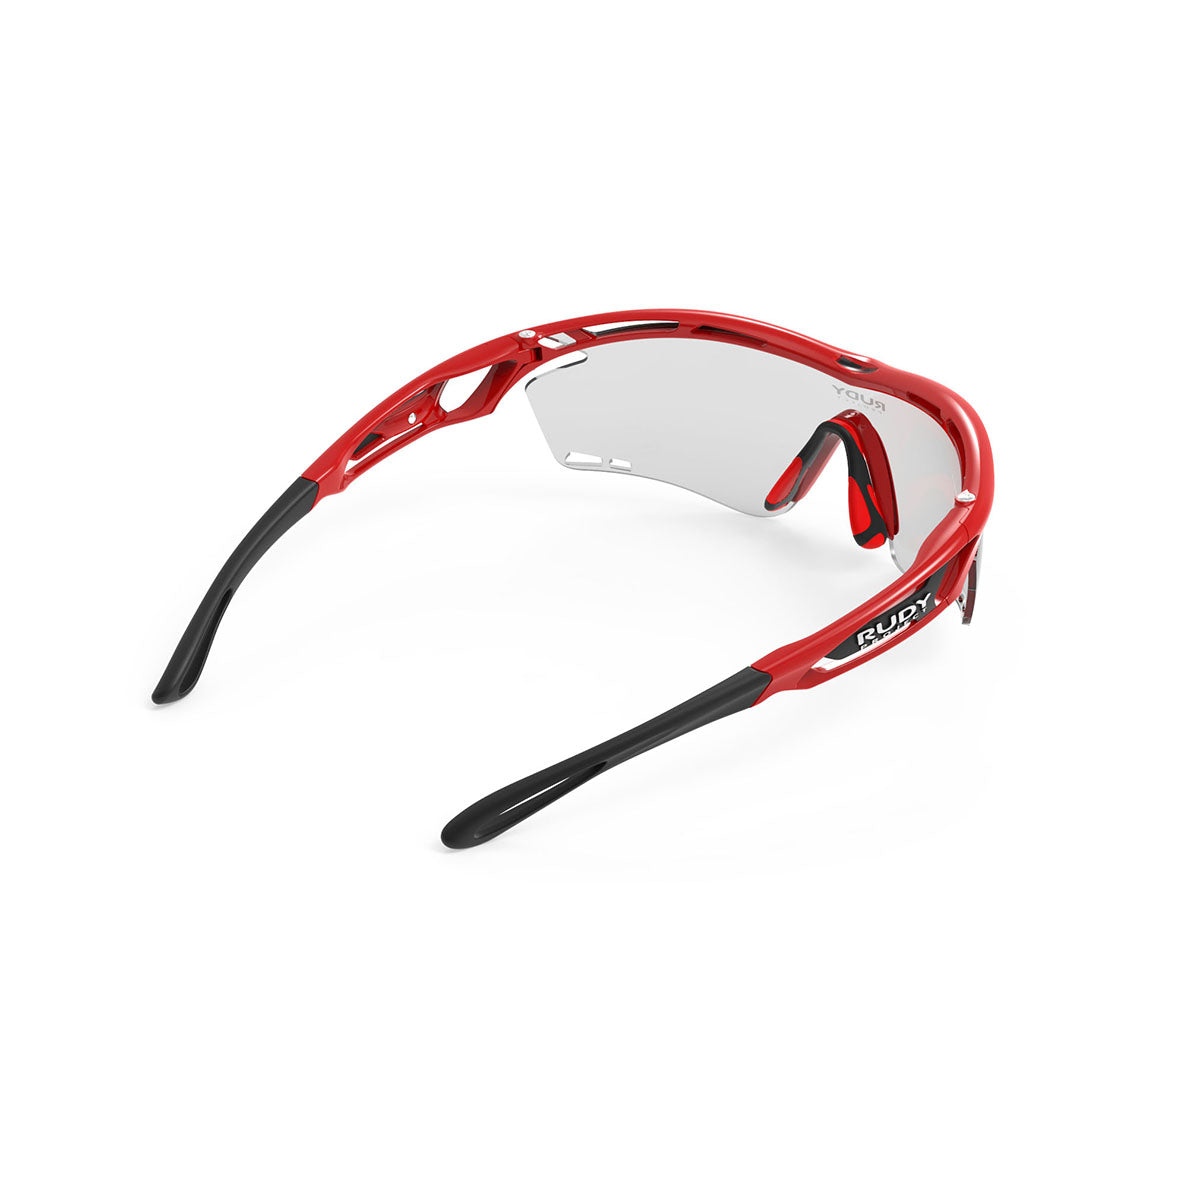 Rudy Project - Tralyx - frame color: Fire Red Gloss - lens color: ImpactX-2 Photochromic Clear to Black - photo angle: Top Back Angle Variant Hover Image